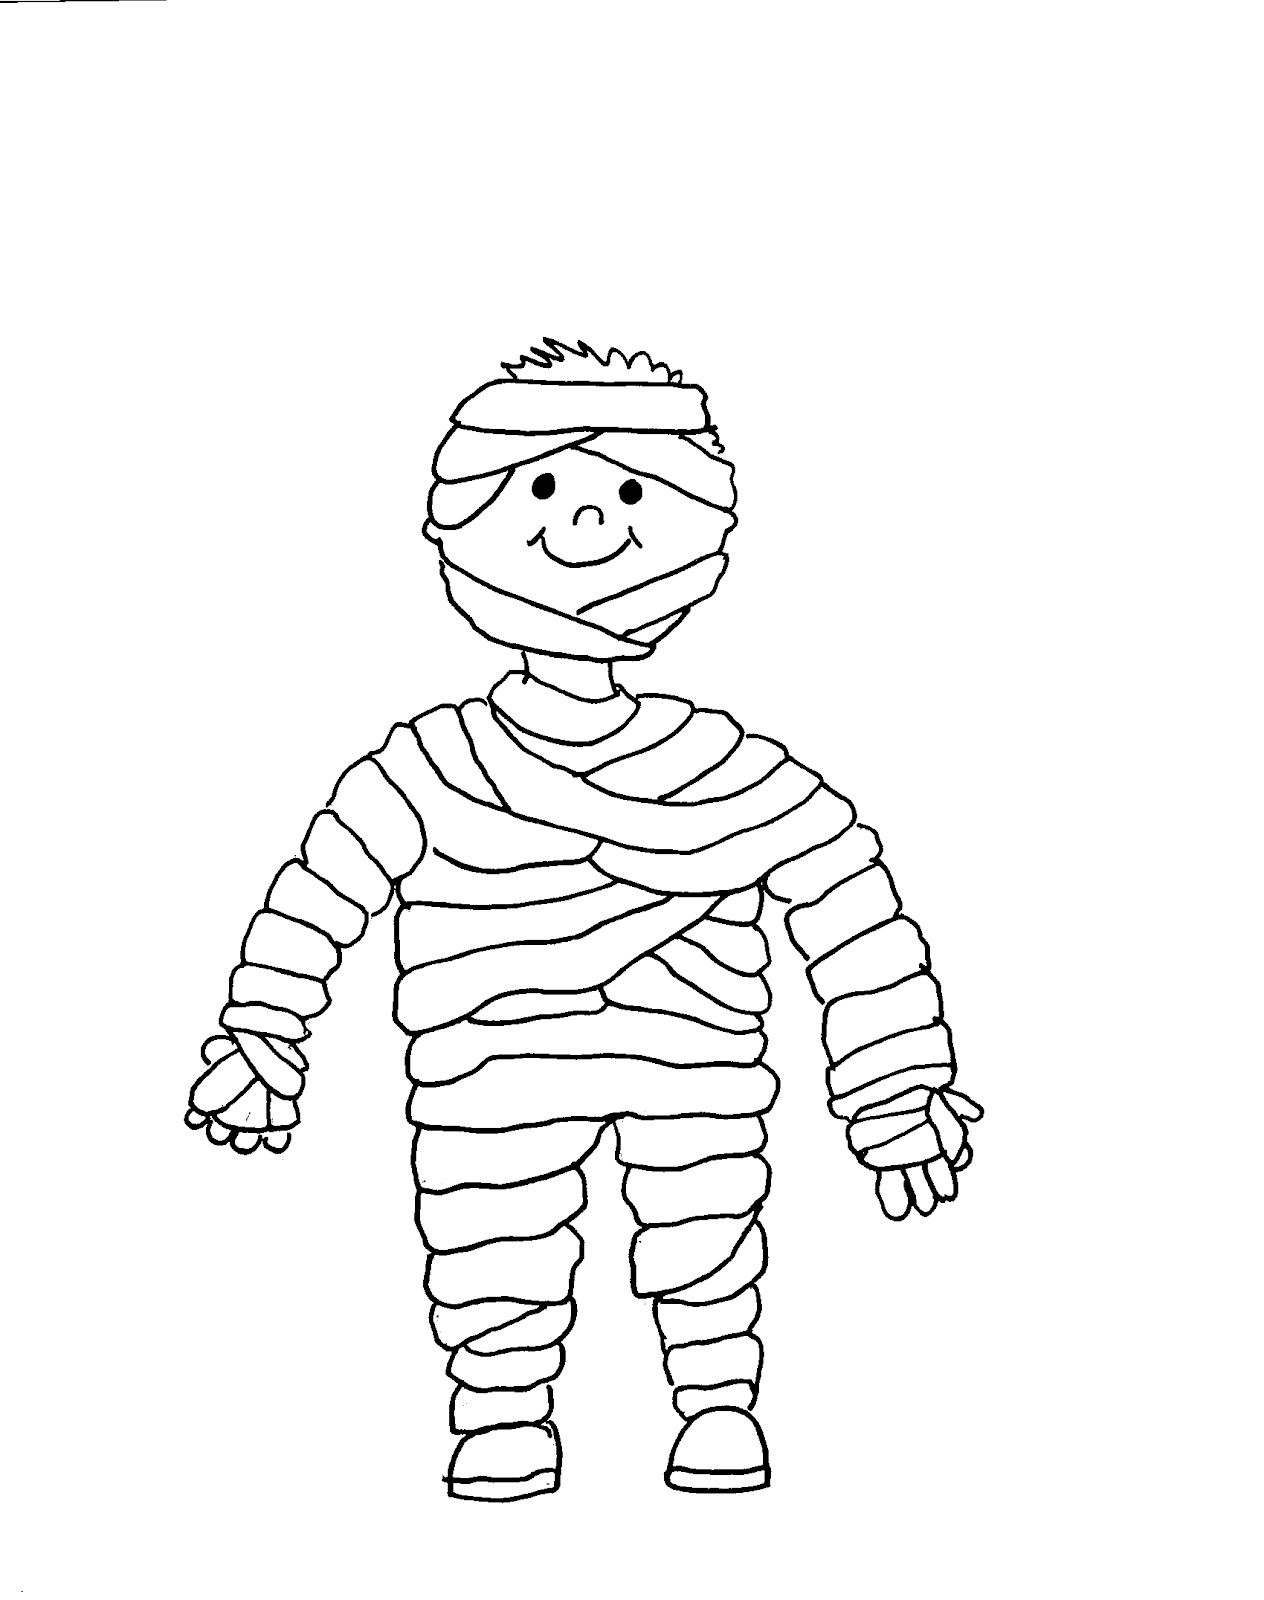 halloween coloring pages - Ancient Egypt Mummy Coloring Pages